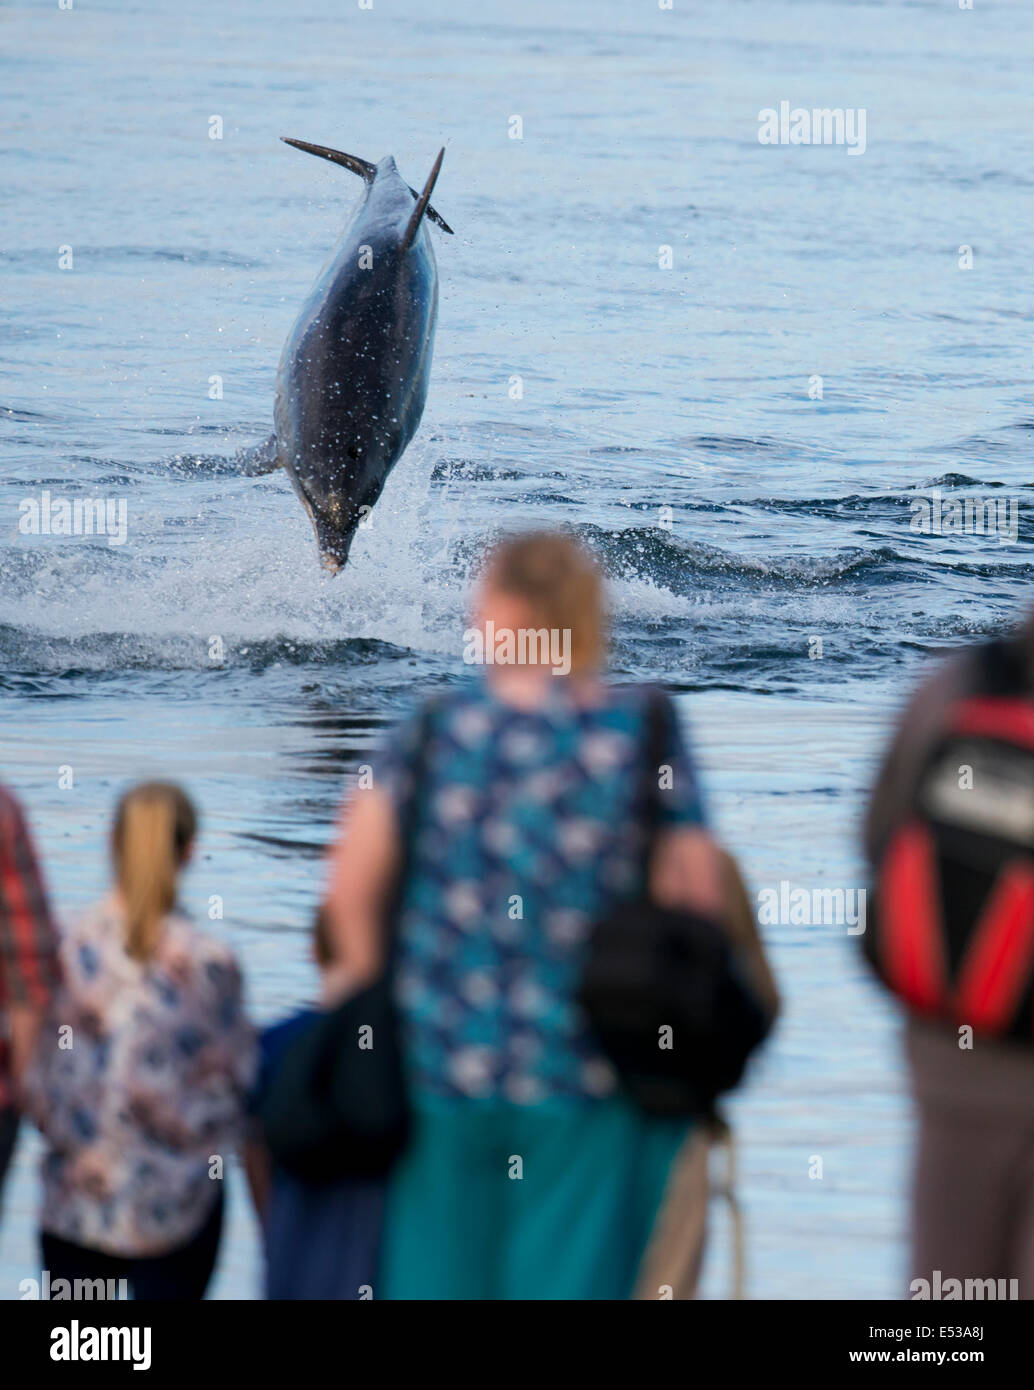 Bottlenose Dolphin breaching in front of onlookers at Chanonry Point, Scotland - Stock Image